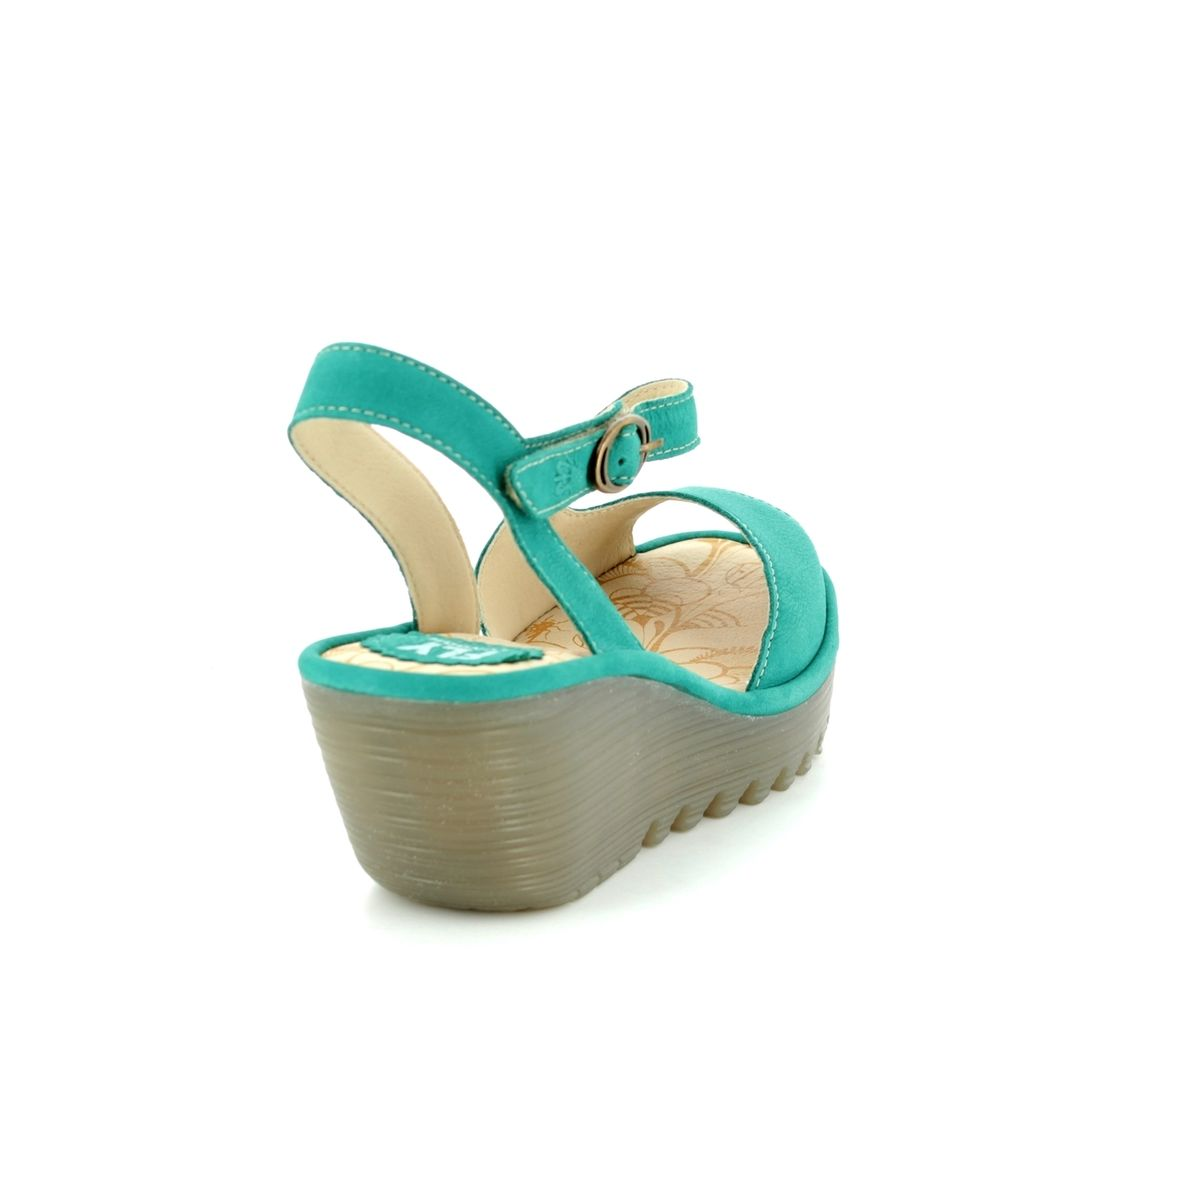 3578e29b26 Fly London Wedge Sandals - Turquoise - P500836 YAMP 836